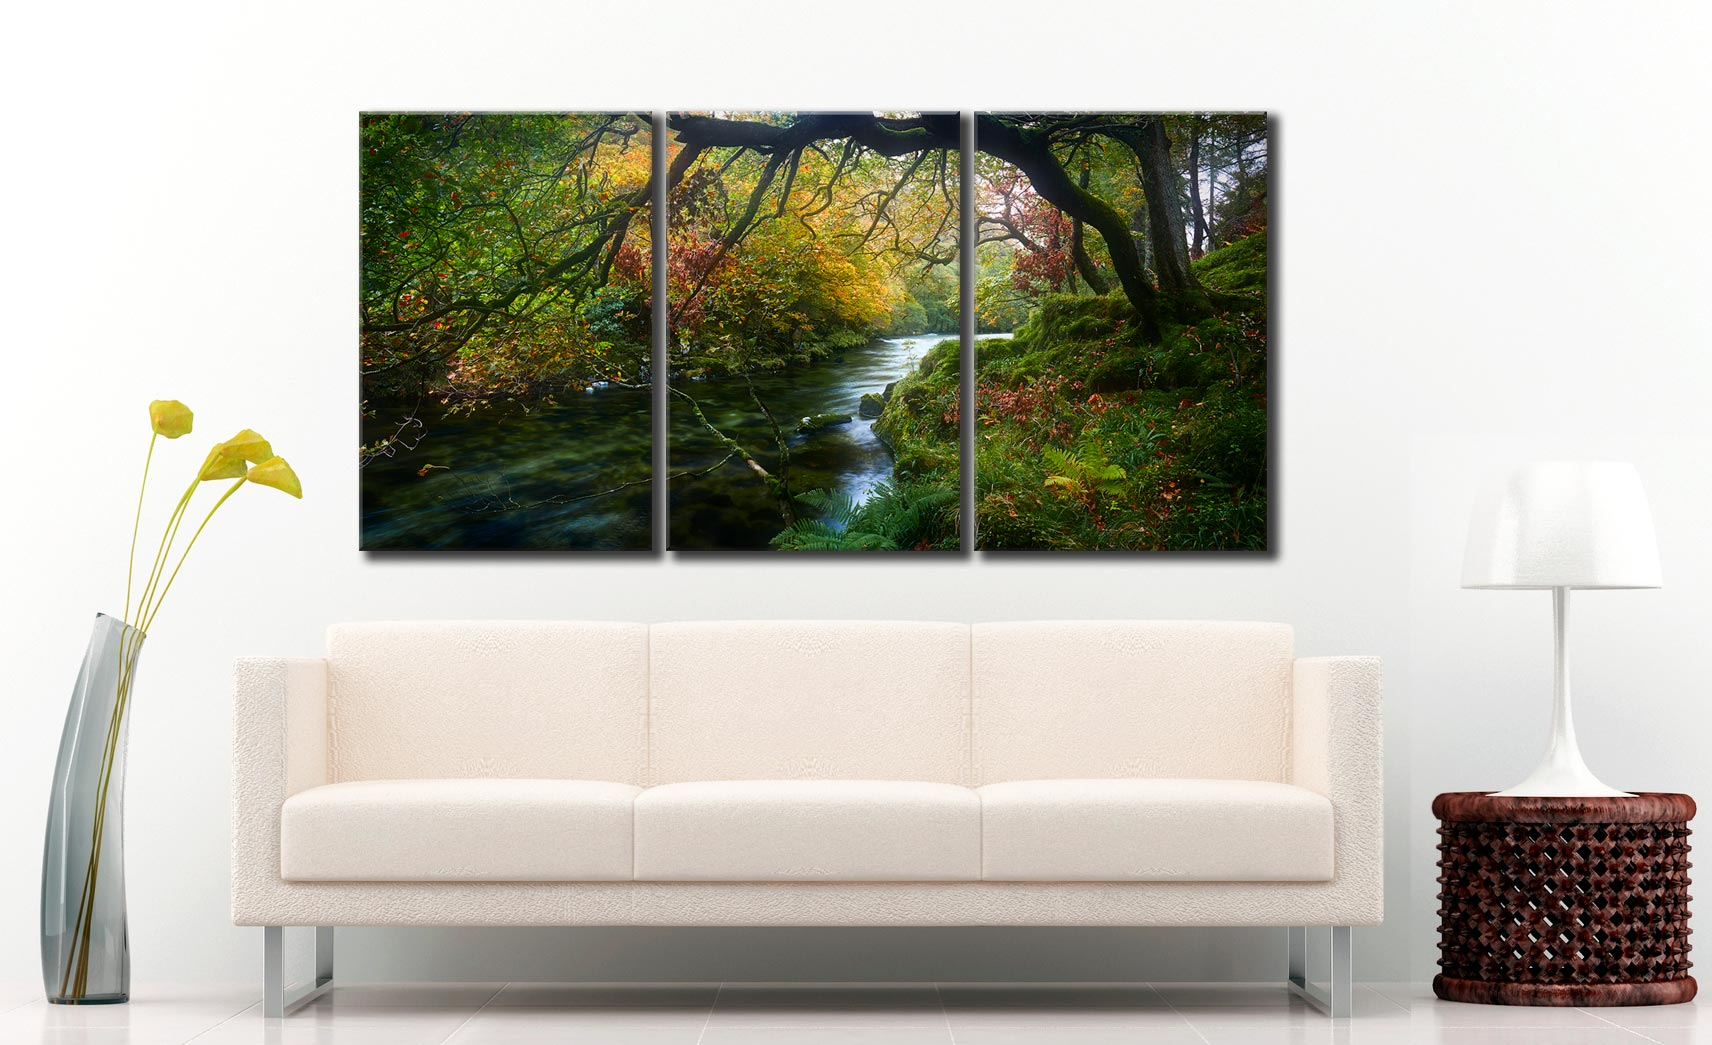 River Derwent in Autumn - 3 Panel Canvas on Wall